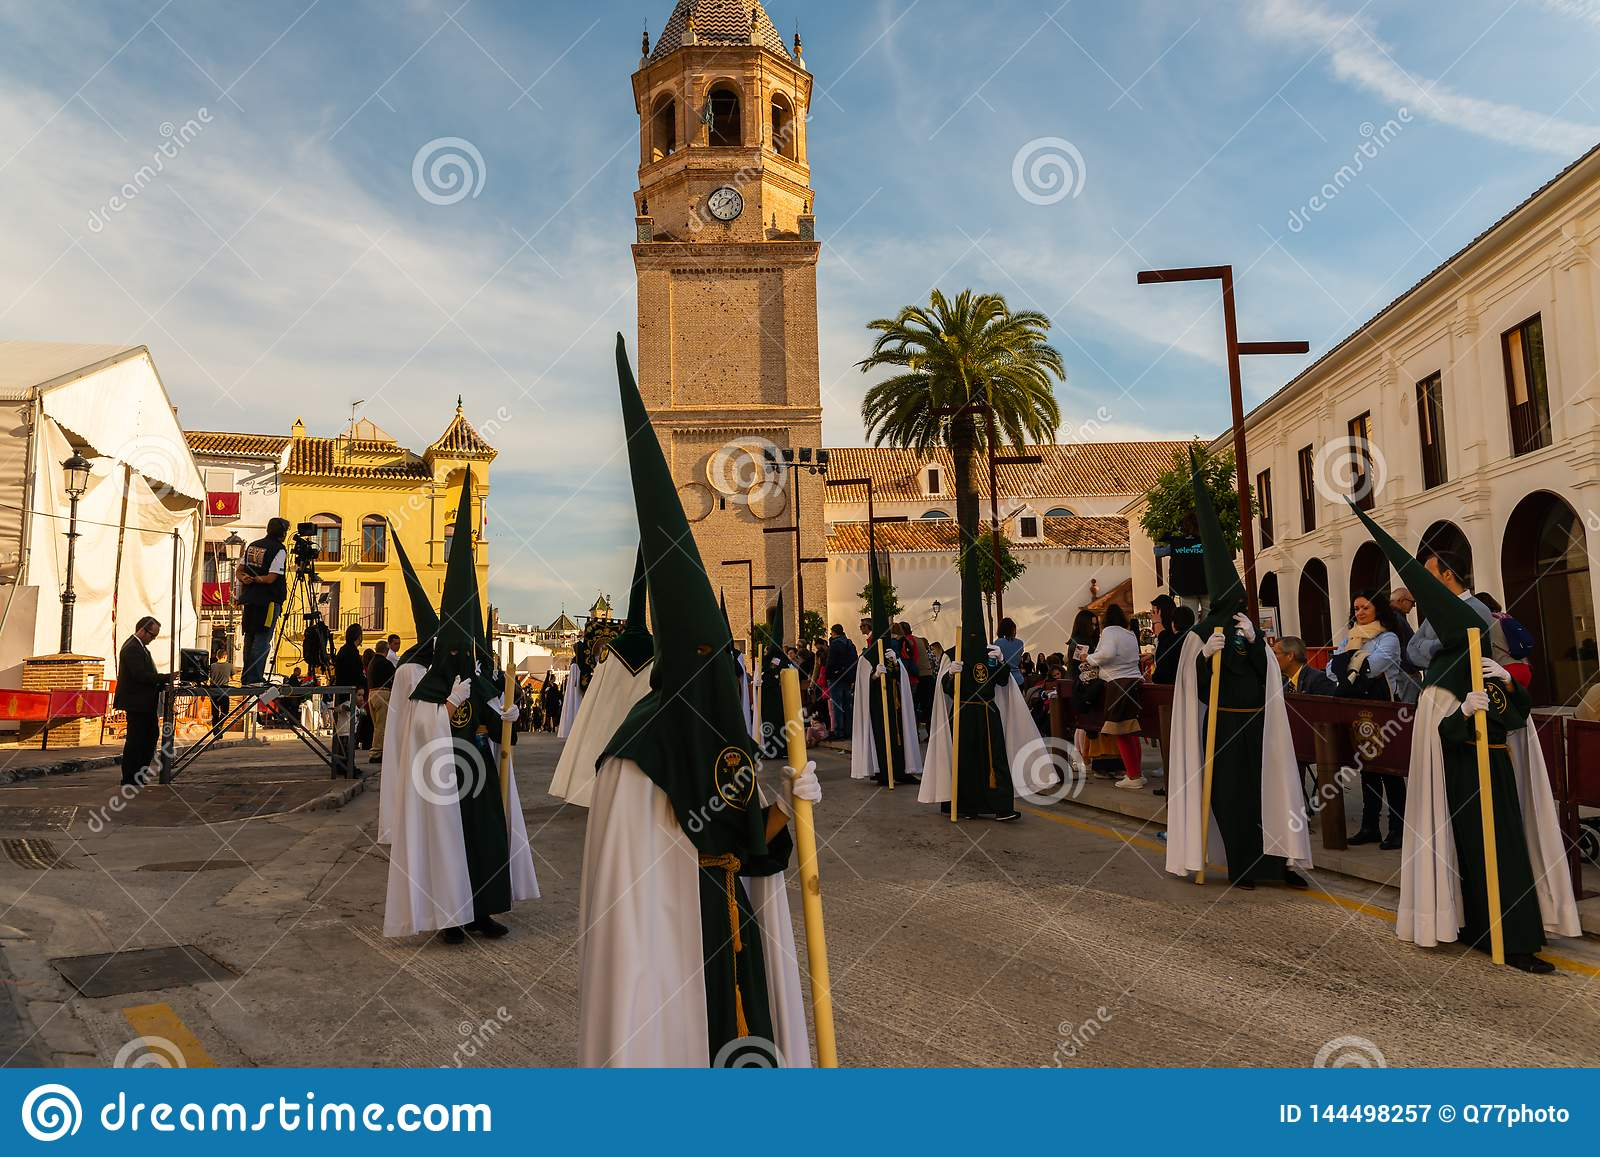 VELEZ-MALAGA, SPAIN - MARCH 29, 2018 People participating in the procession in the Holy Week in a Spanish city